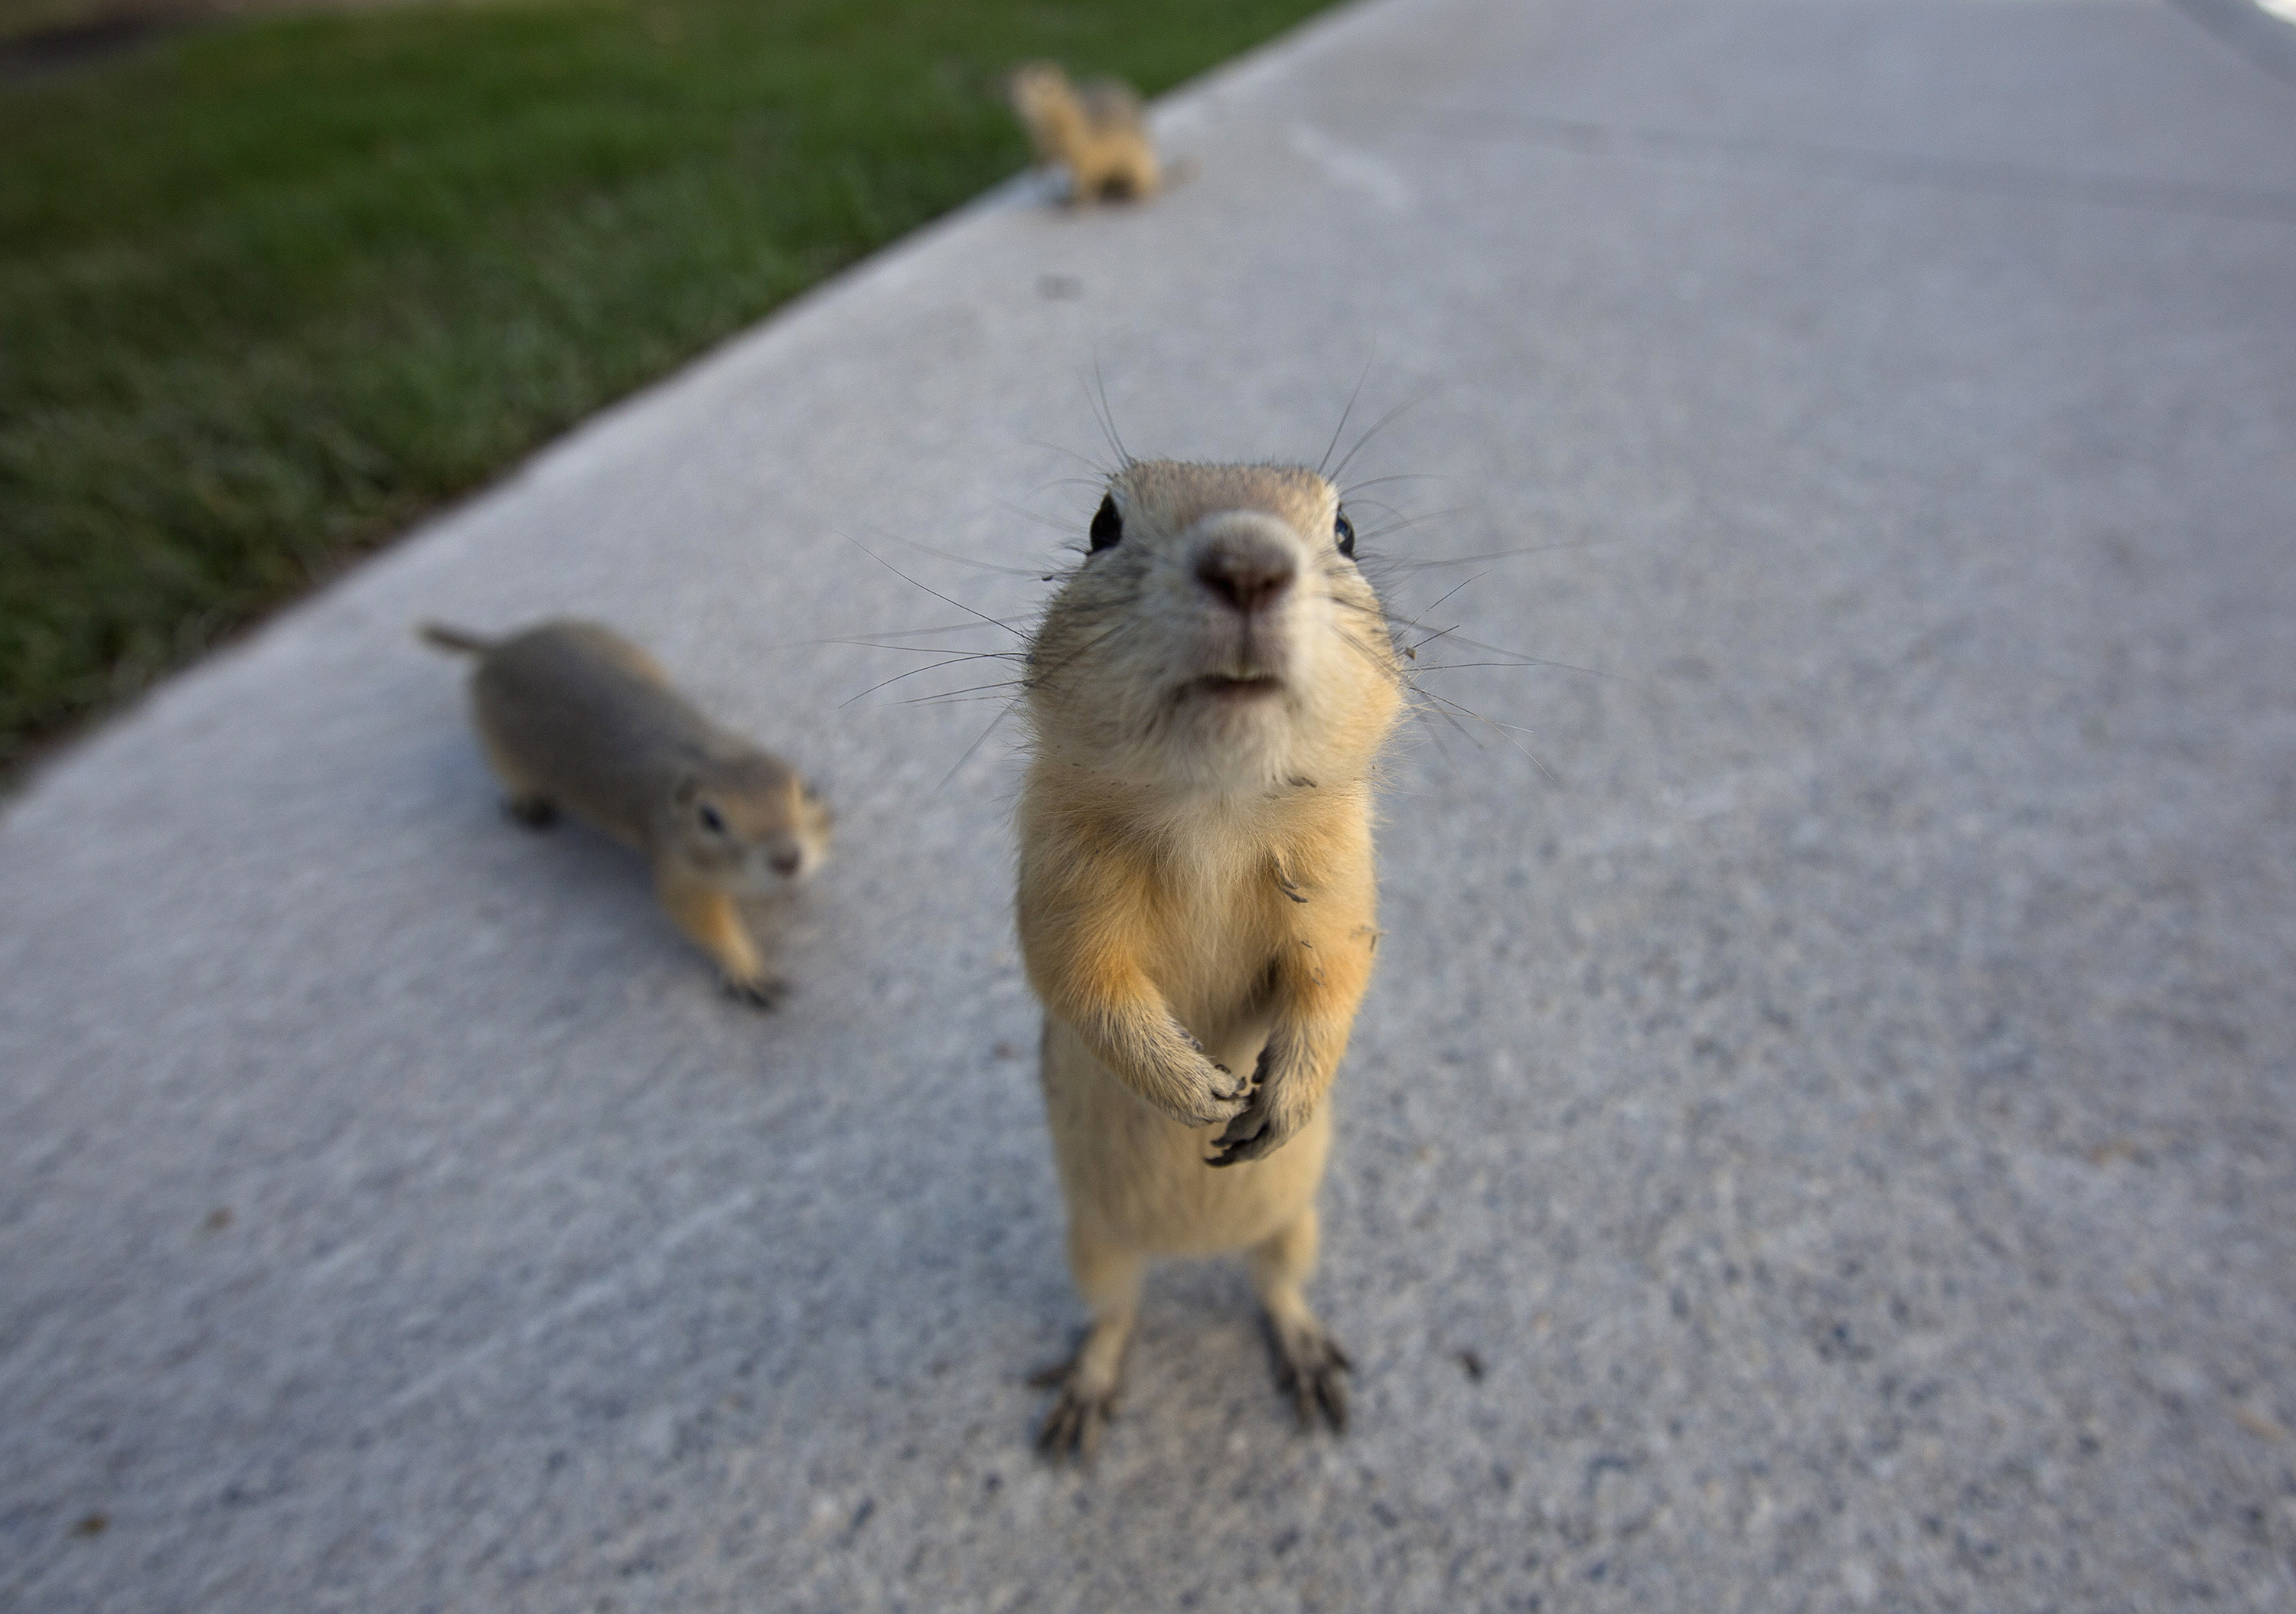 a picture of a gopher